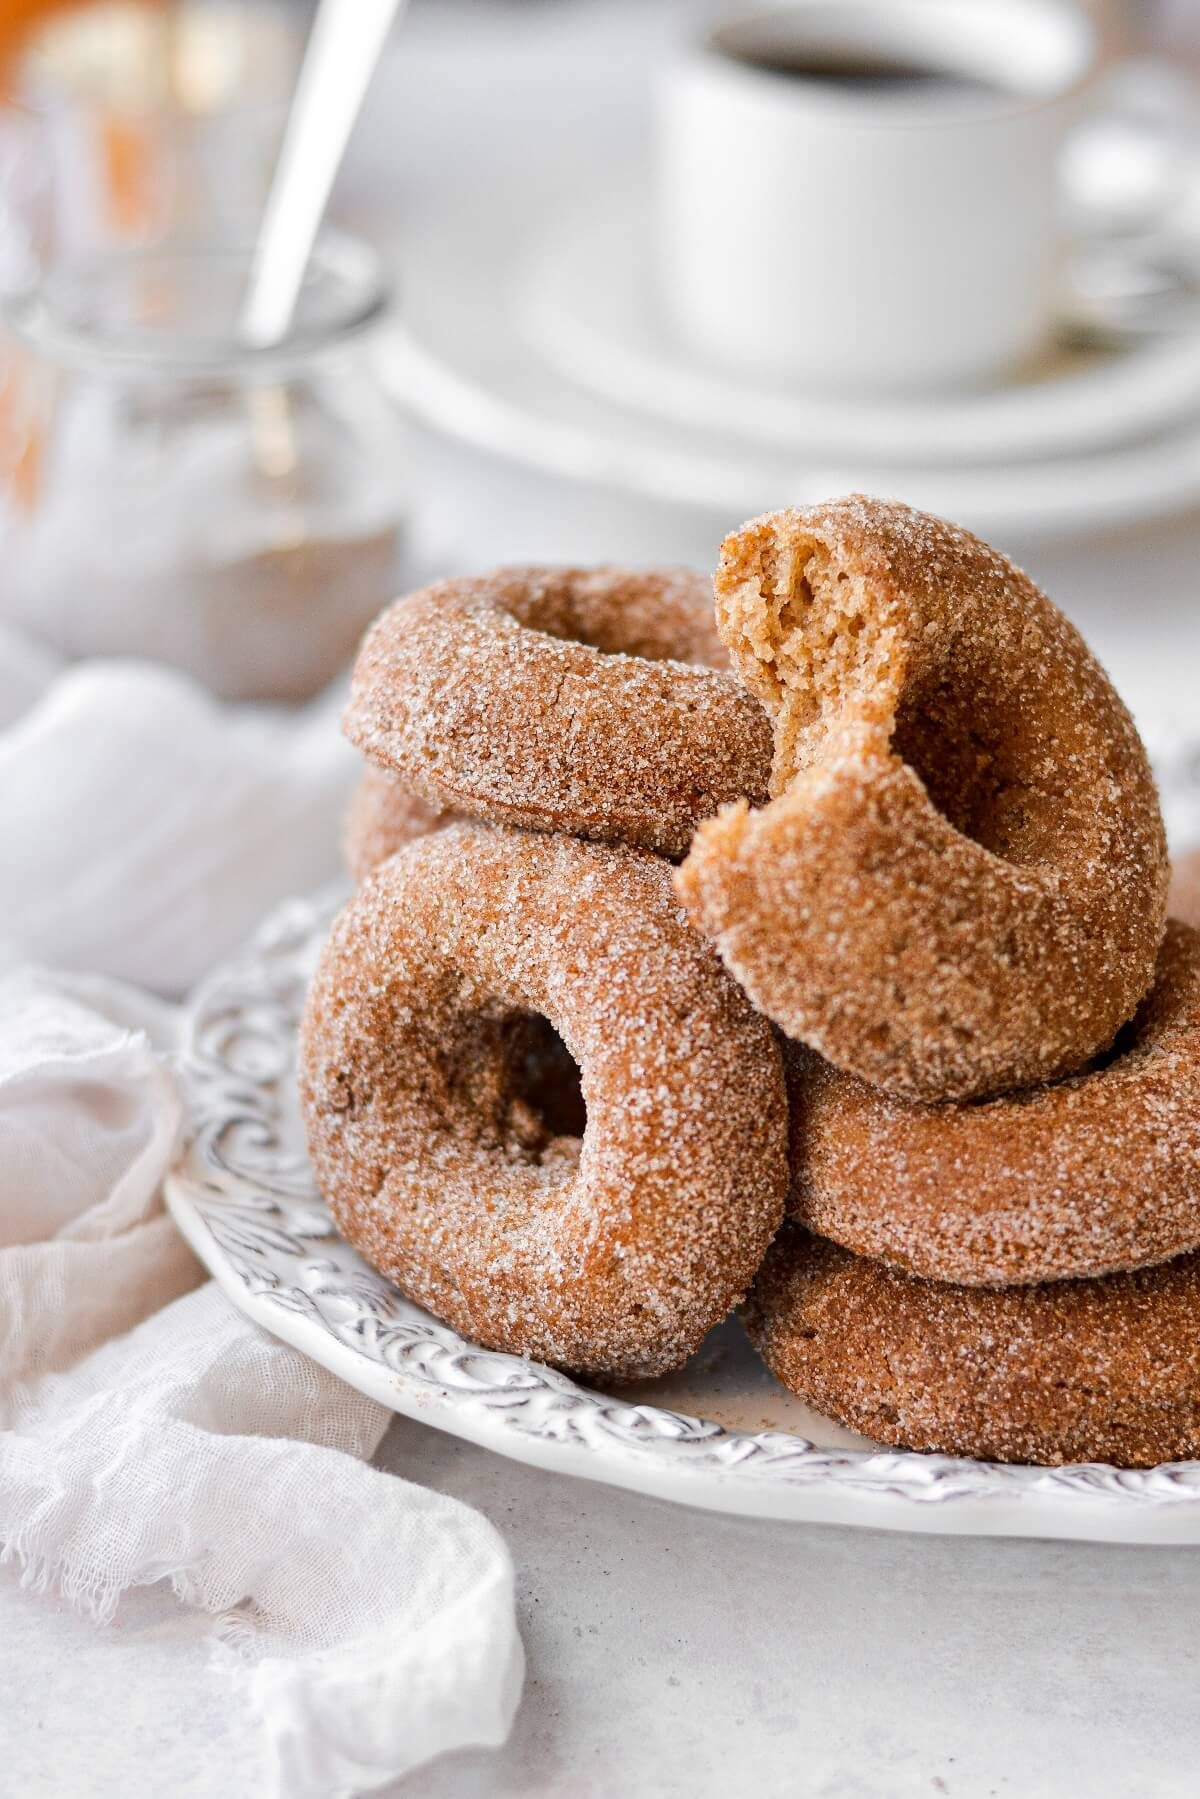 Apple cider doughnuts, one with a bite taken.